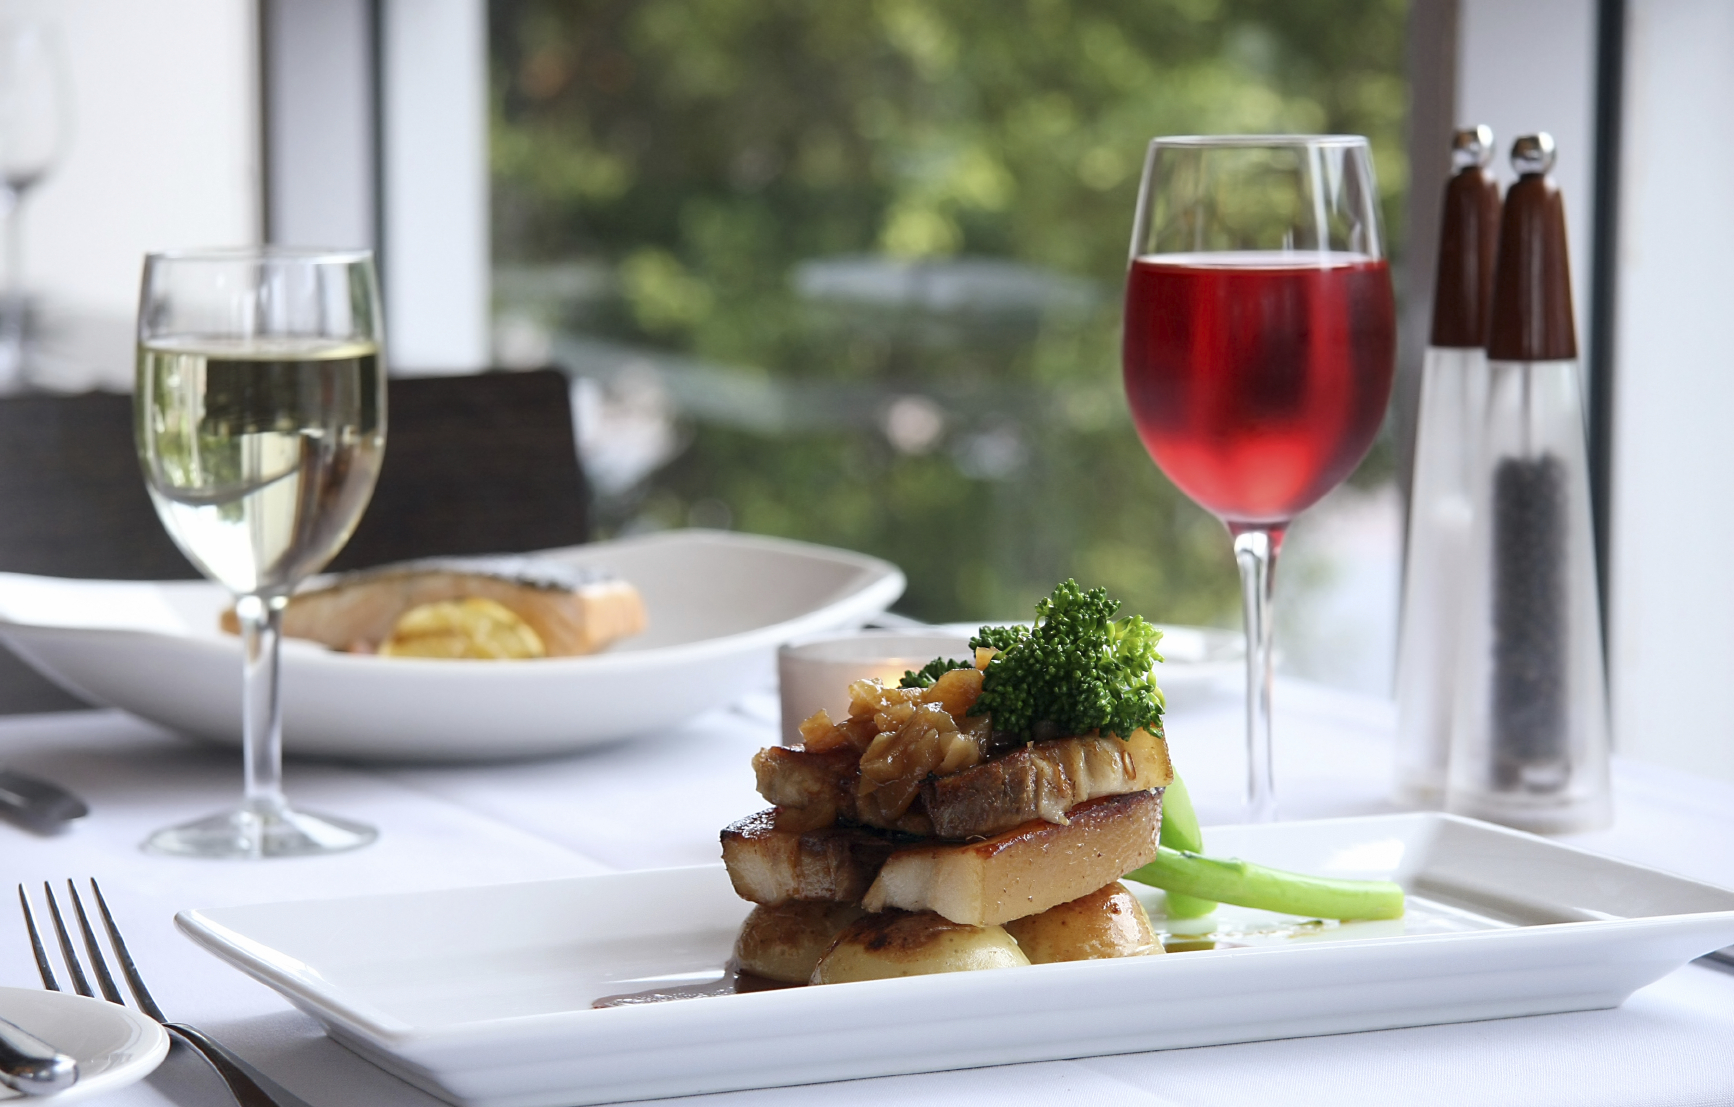 Attention all hk foodies restaurant week is back madbuzzhk for Table 52 restaurant week 2015